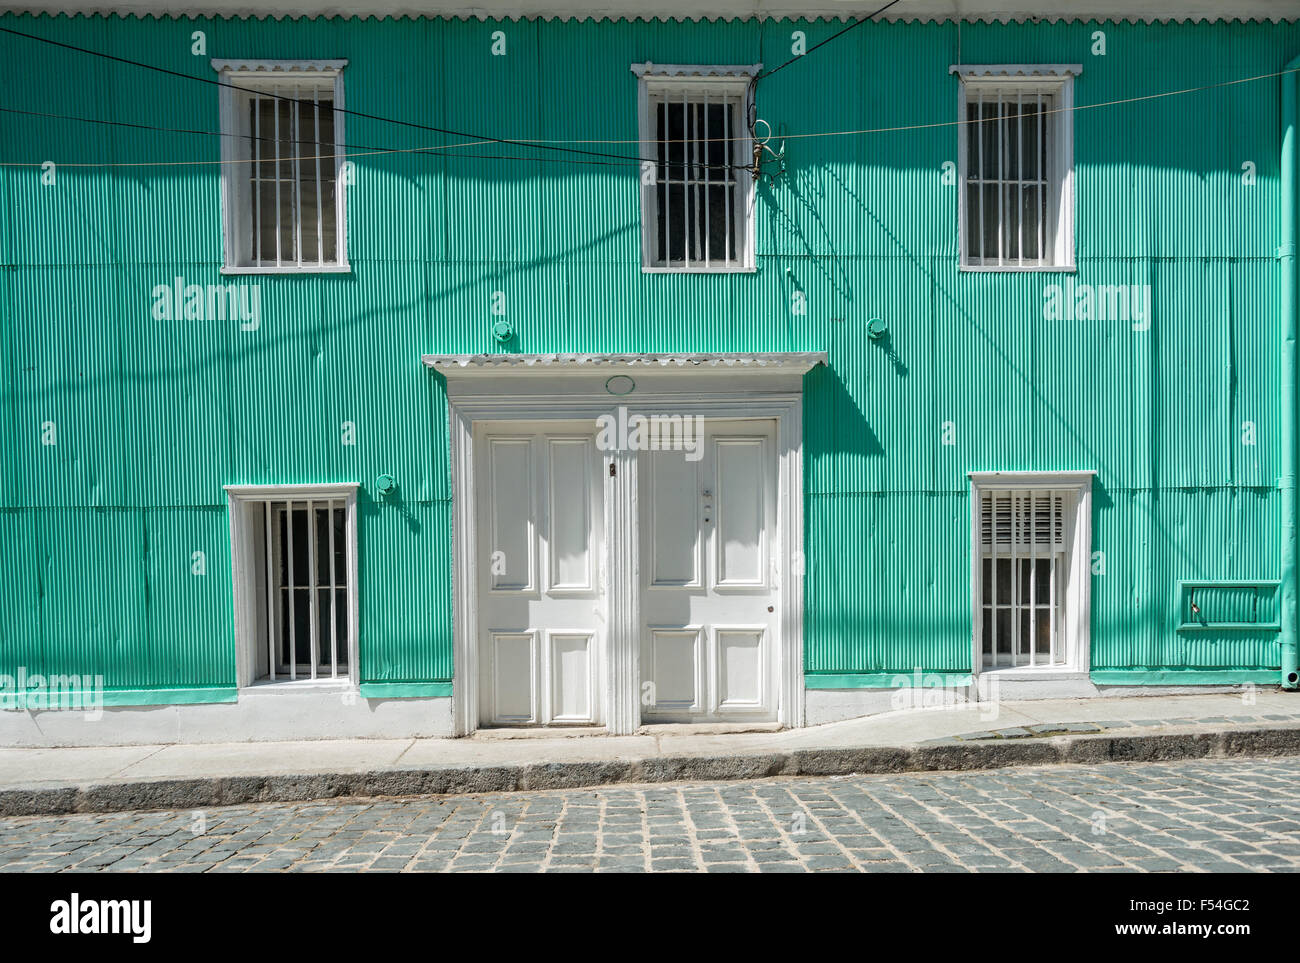 Typical zinc faсade of the houses in Valparaiso, Chile - Stock Image